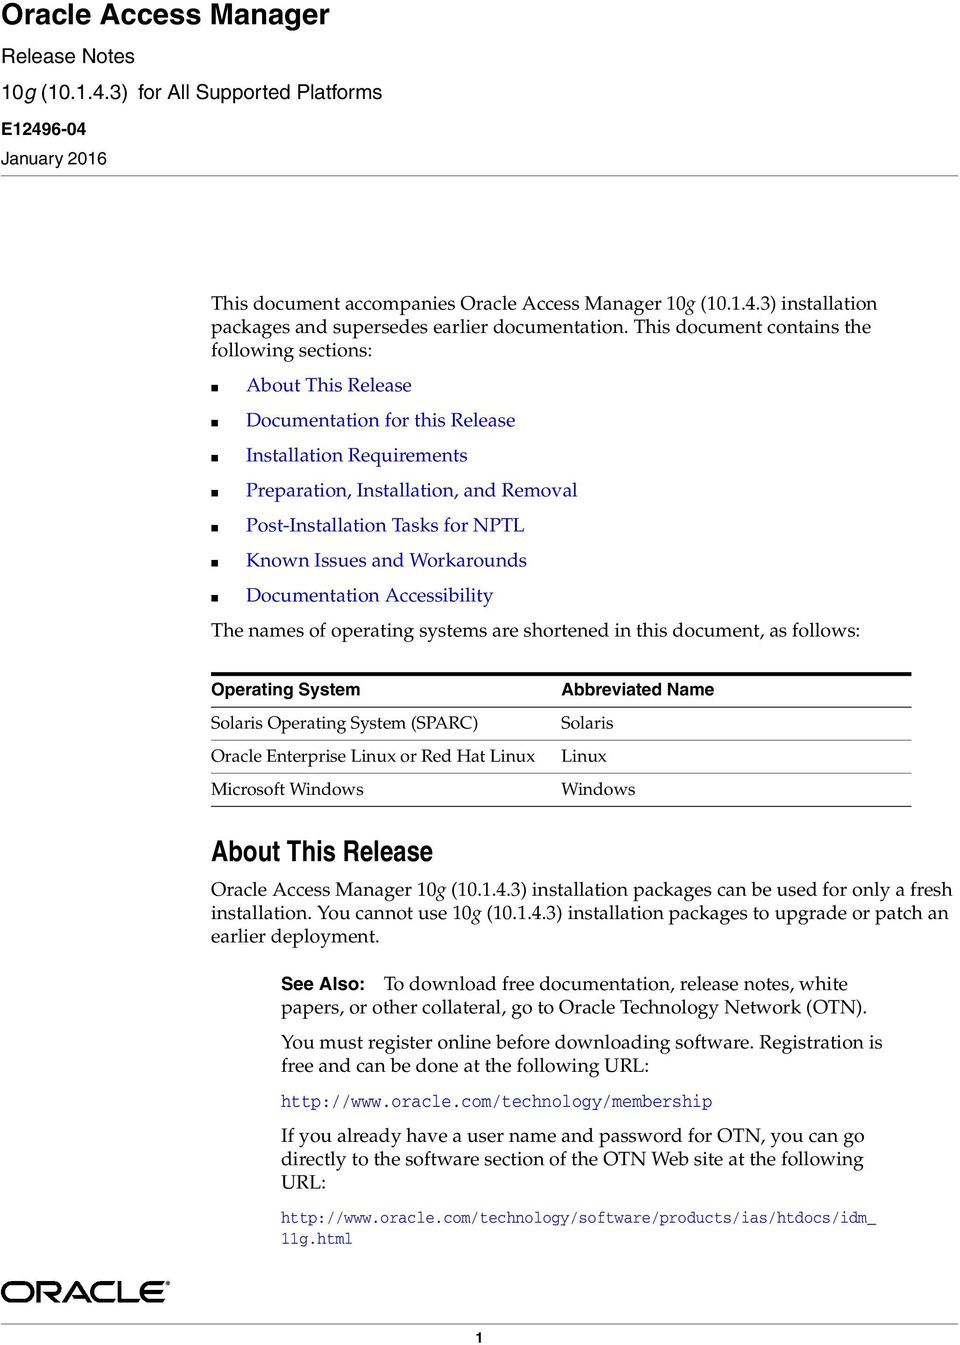 Oracle Access Manager - PDF